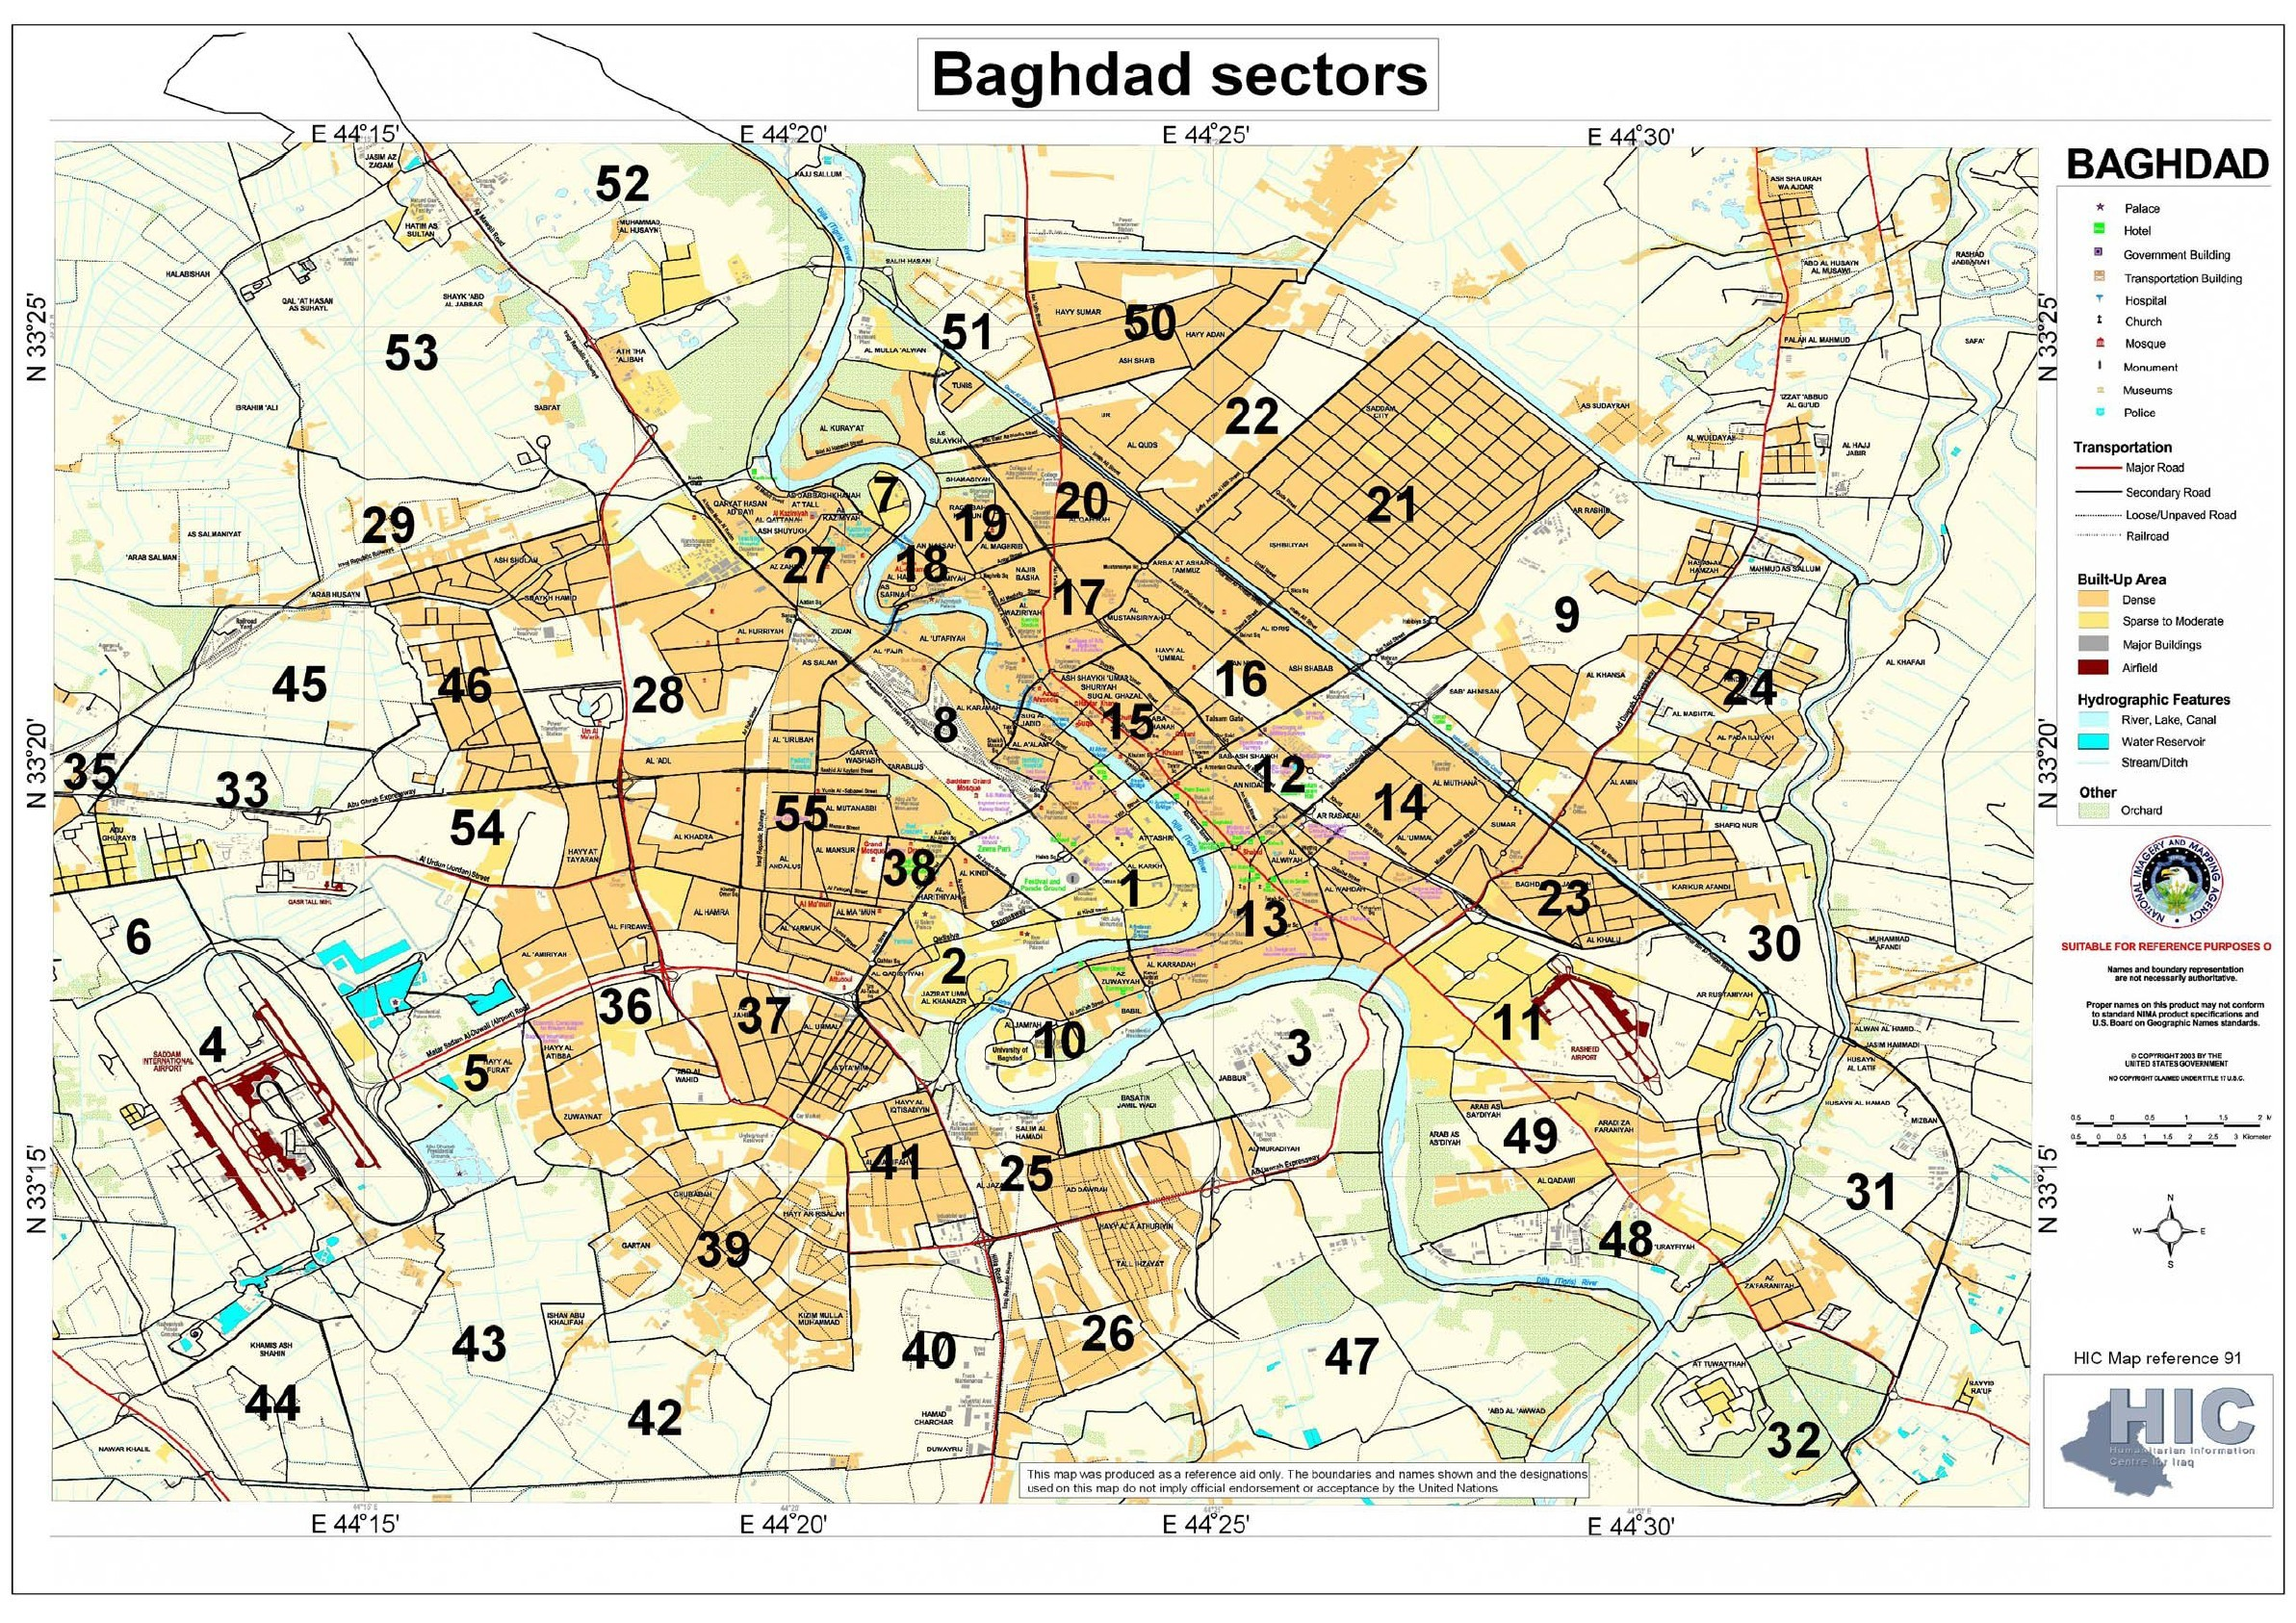 returns and removals in baghdad